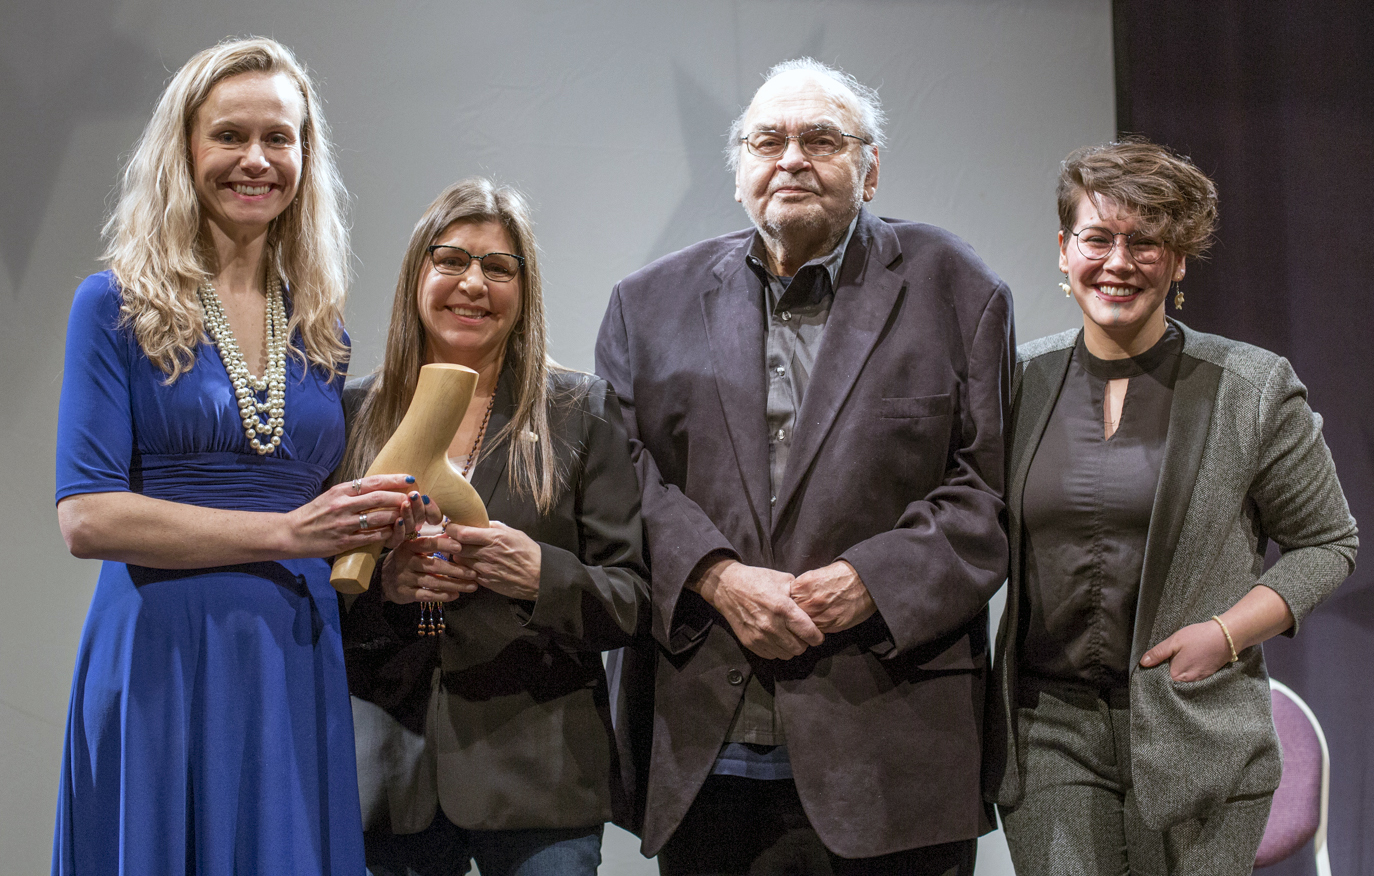 The CRCC earned the 2019 Arts and Humanities Award in the field of Distinguished Service to Education from the Governor of Alaska. Pictured here with the award are: (From left to right) Kelly Tshibaka, Commissioner of the Alaska Department of Administration; Patty Schwalenberg, Executive Director of CRRC; Robert Heinrichs, current CRRC Board Member from the Native Village of Eyak; and Beth Pipkin, former Board member from the Chenega IRA Council.